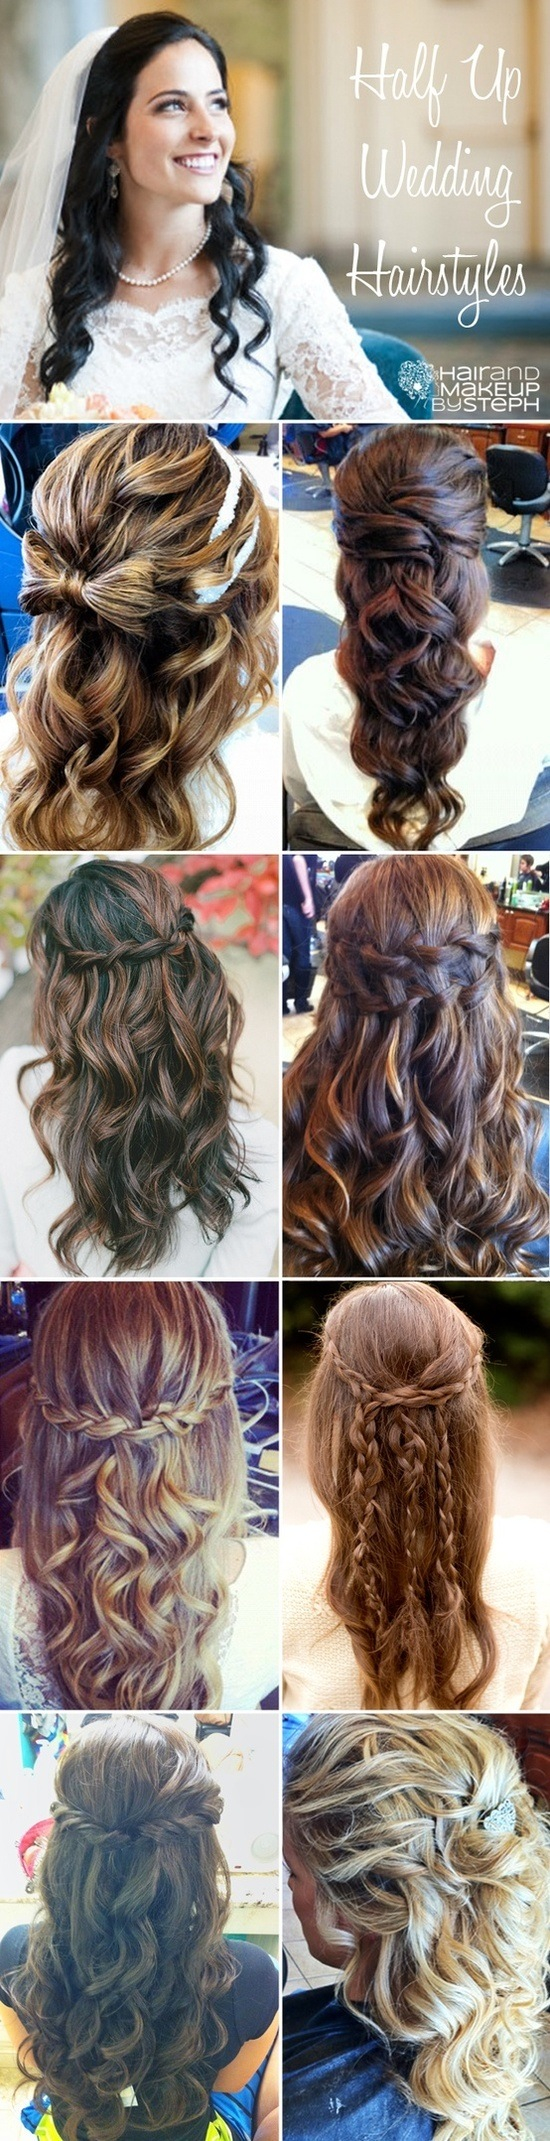 overwhelming half up half down wedding hairstyles hairgame